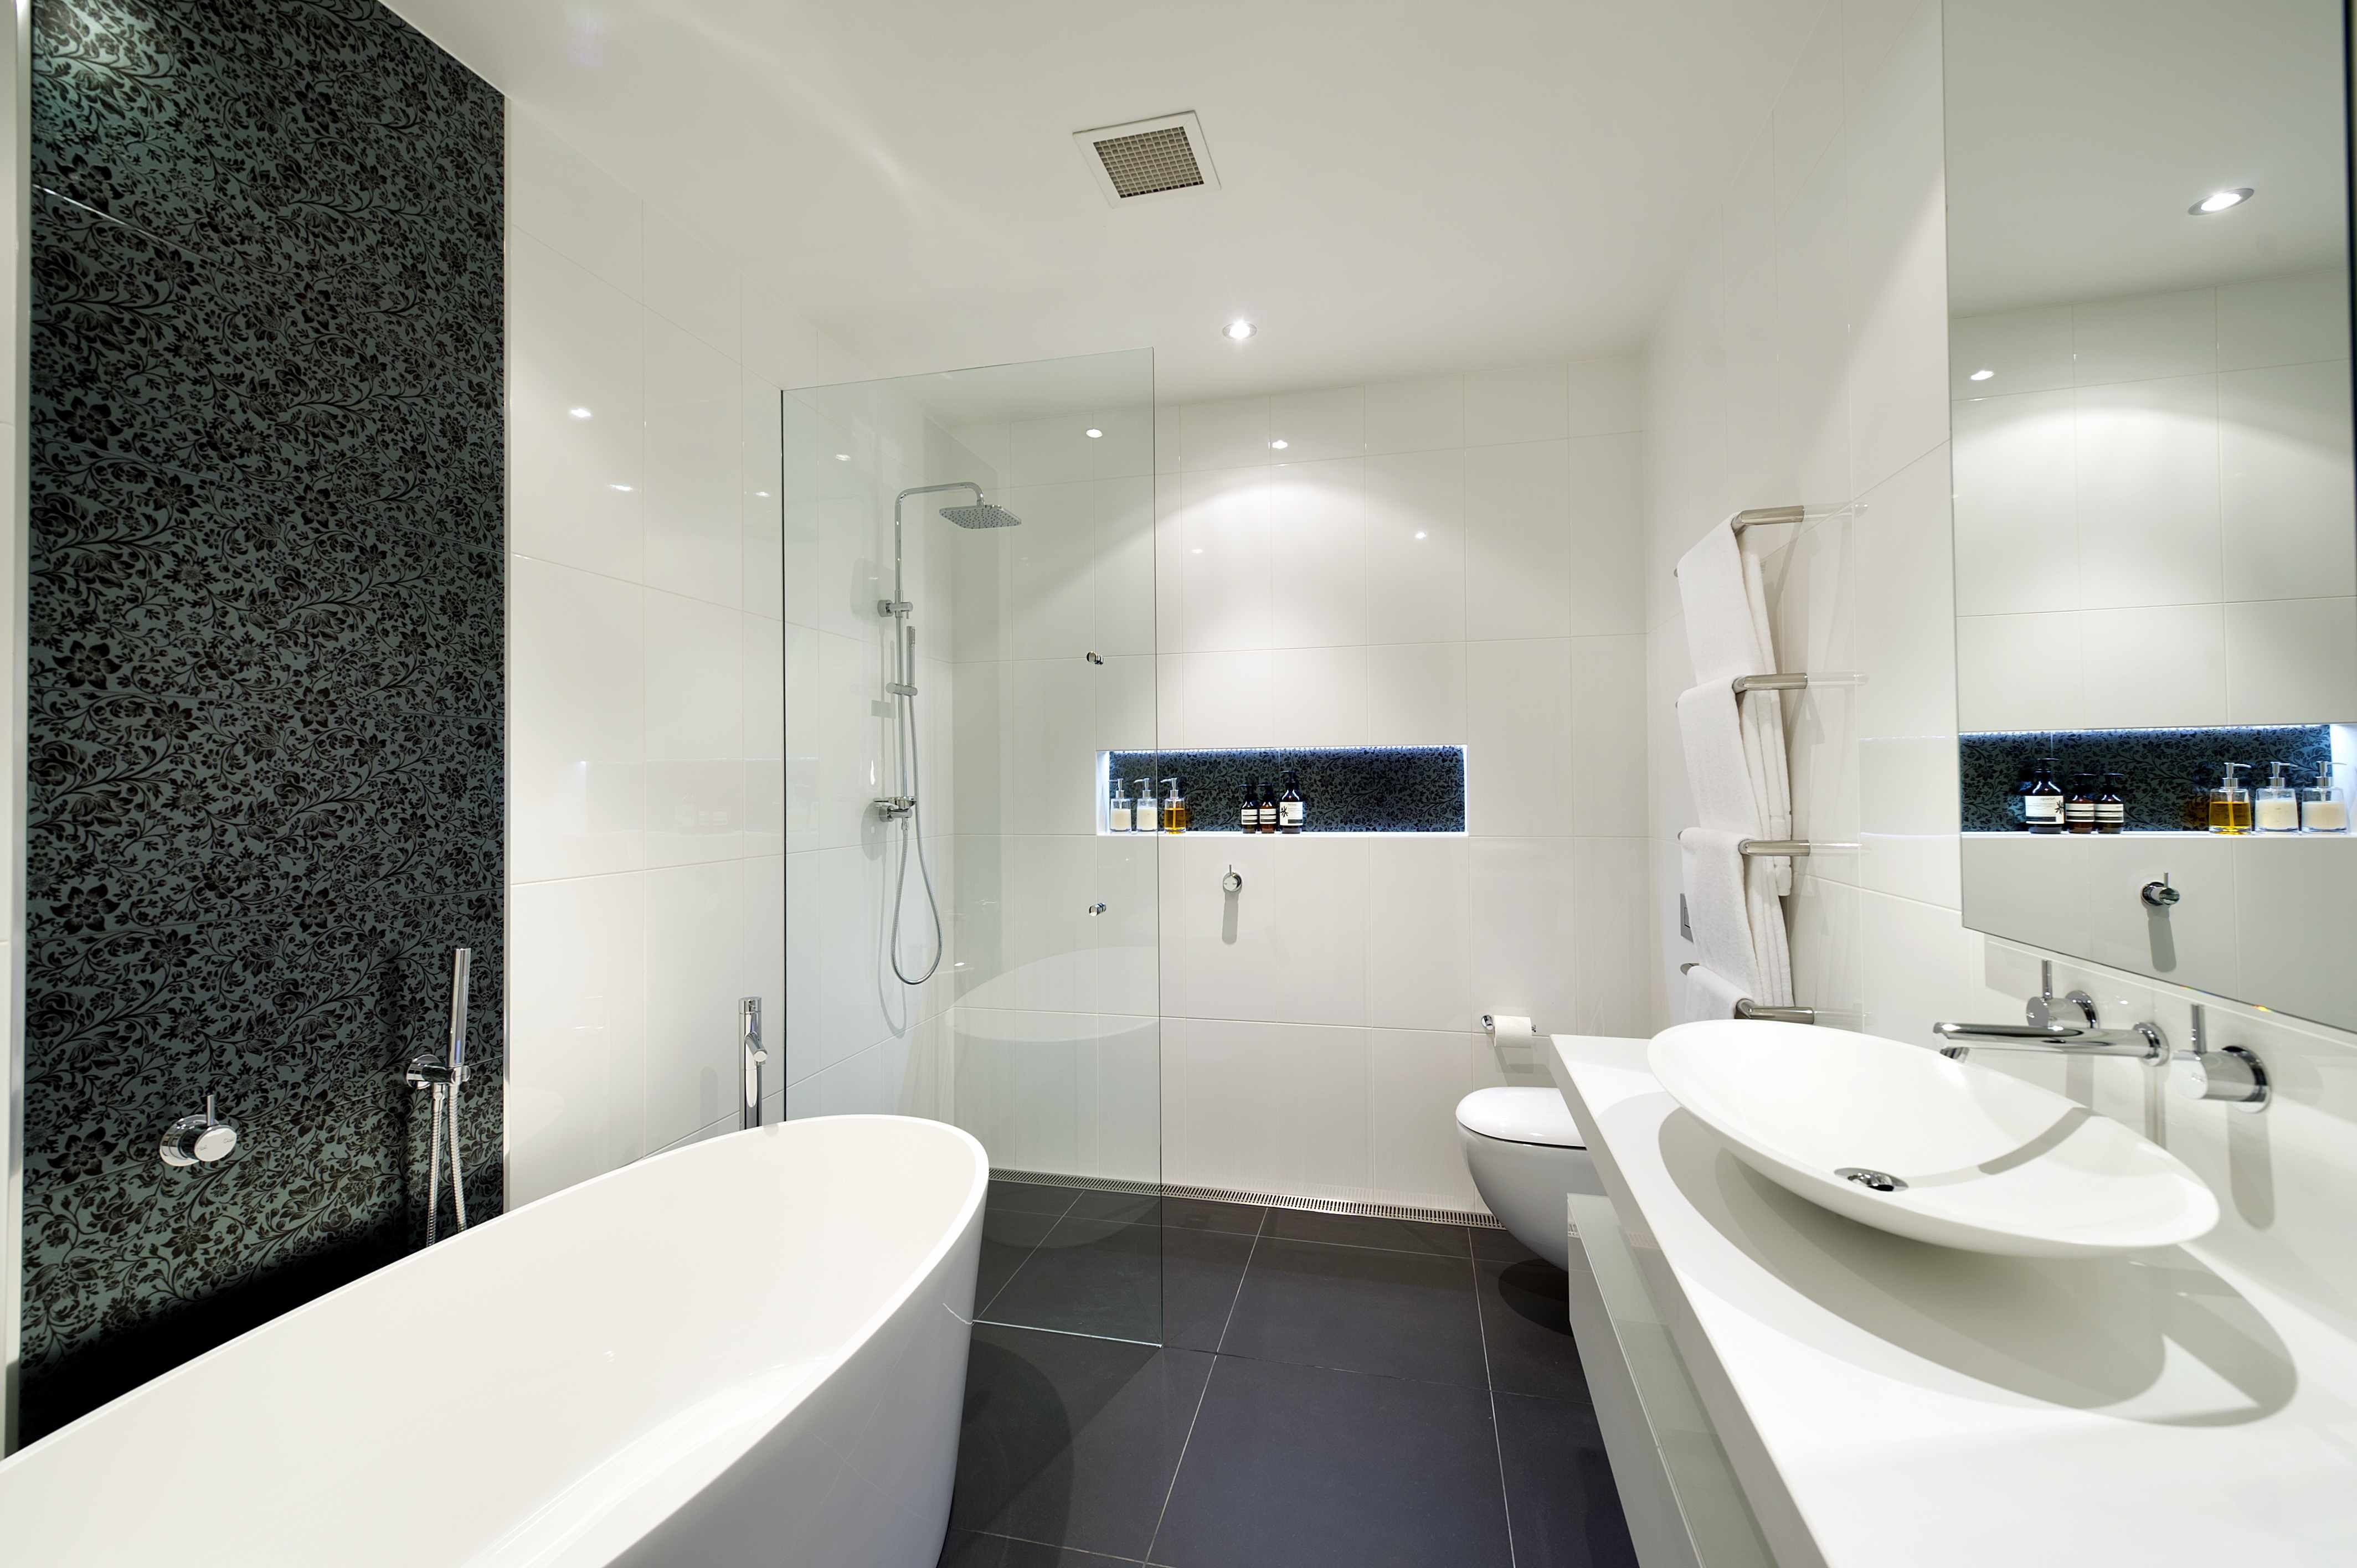 17 best ideas about modern city bathrooms on pinterest | city